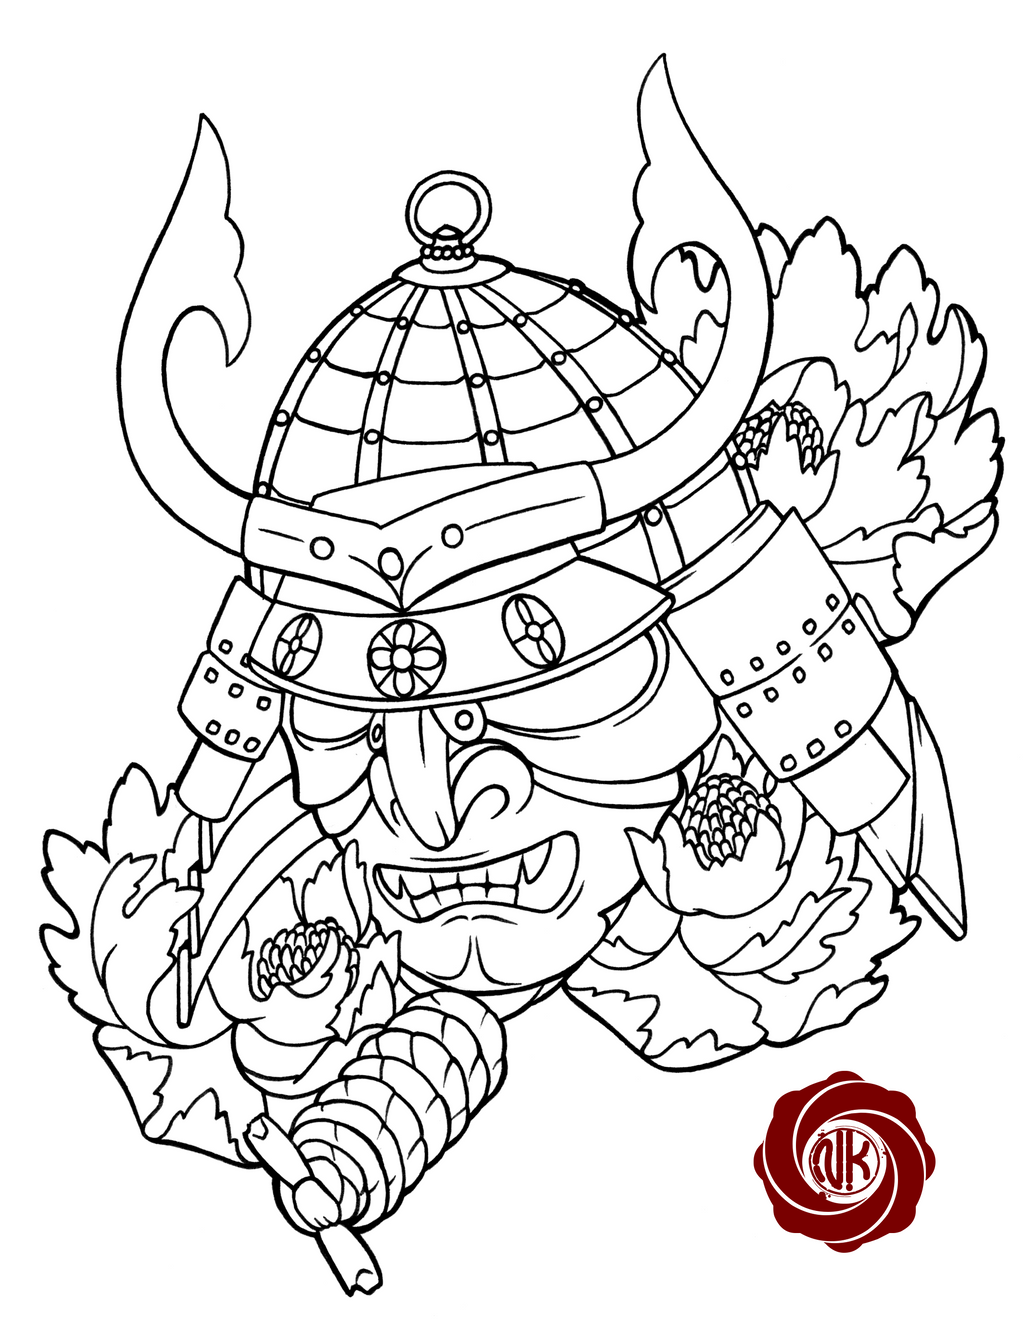 Samurai 2 sketch tattoo by Punk01 on DeviantArt